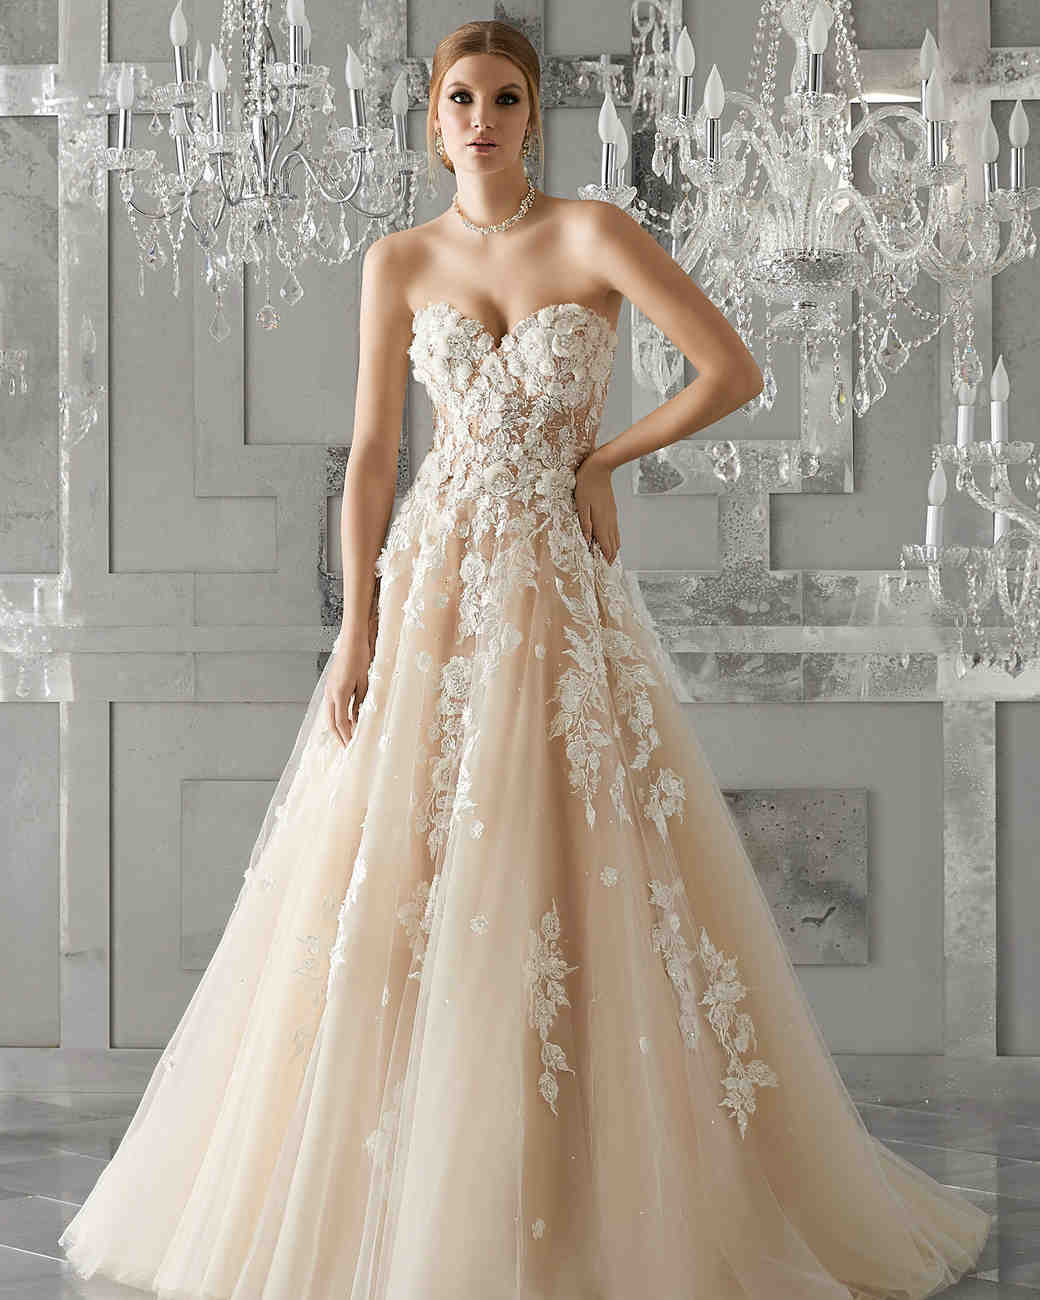 Morilee by Madeline Gardner Spring 2018 Wedding Dress Collection ...